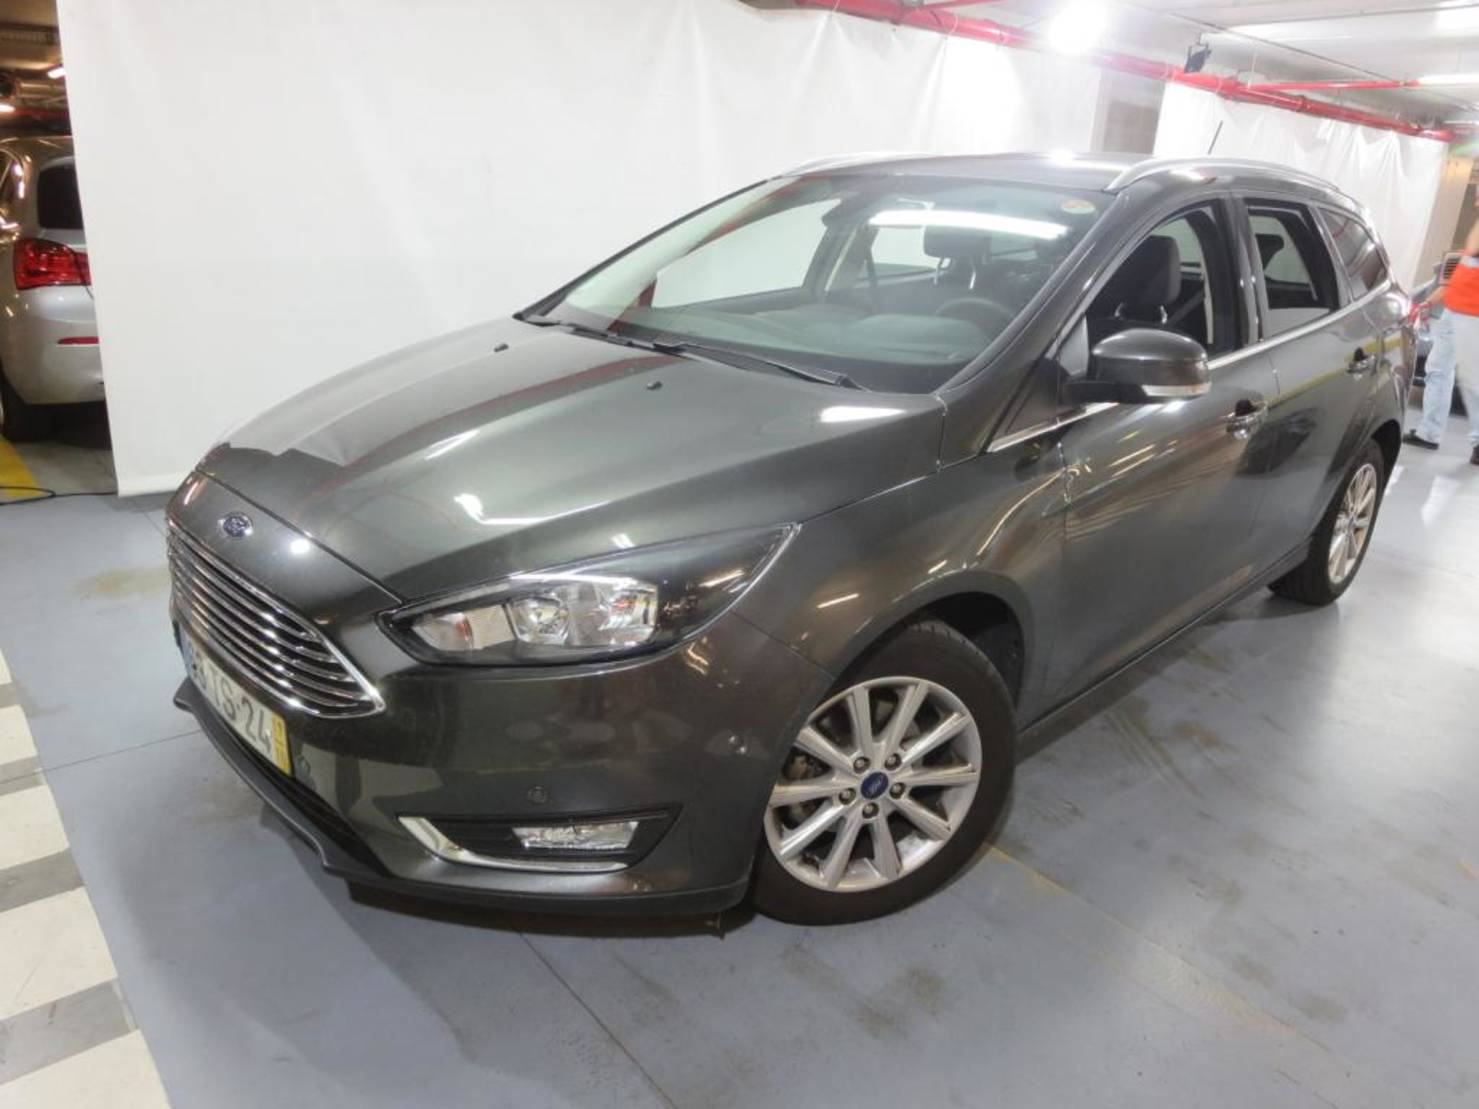 Ford Focus Turnier 1.5 TDCi DPF Start-Stopp-System, Titanium detail1